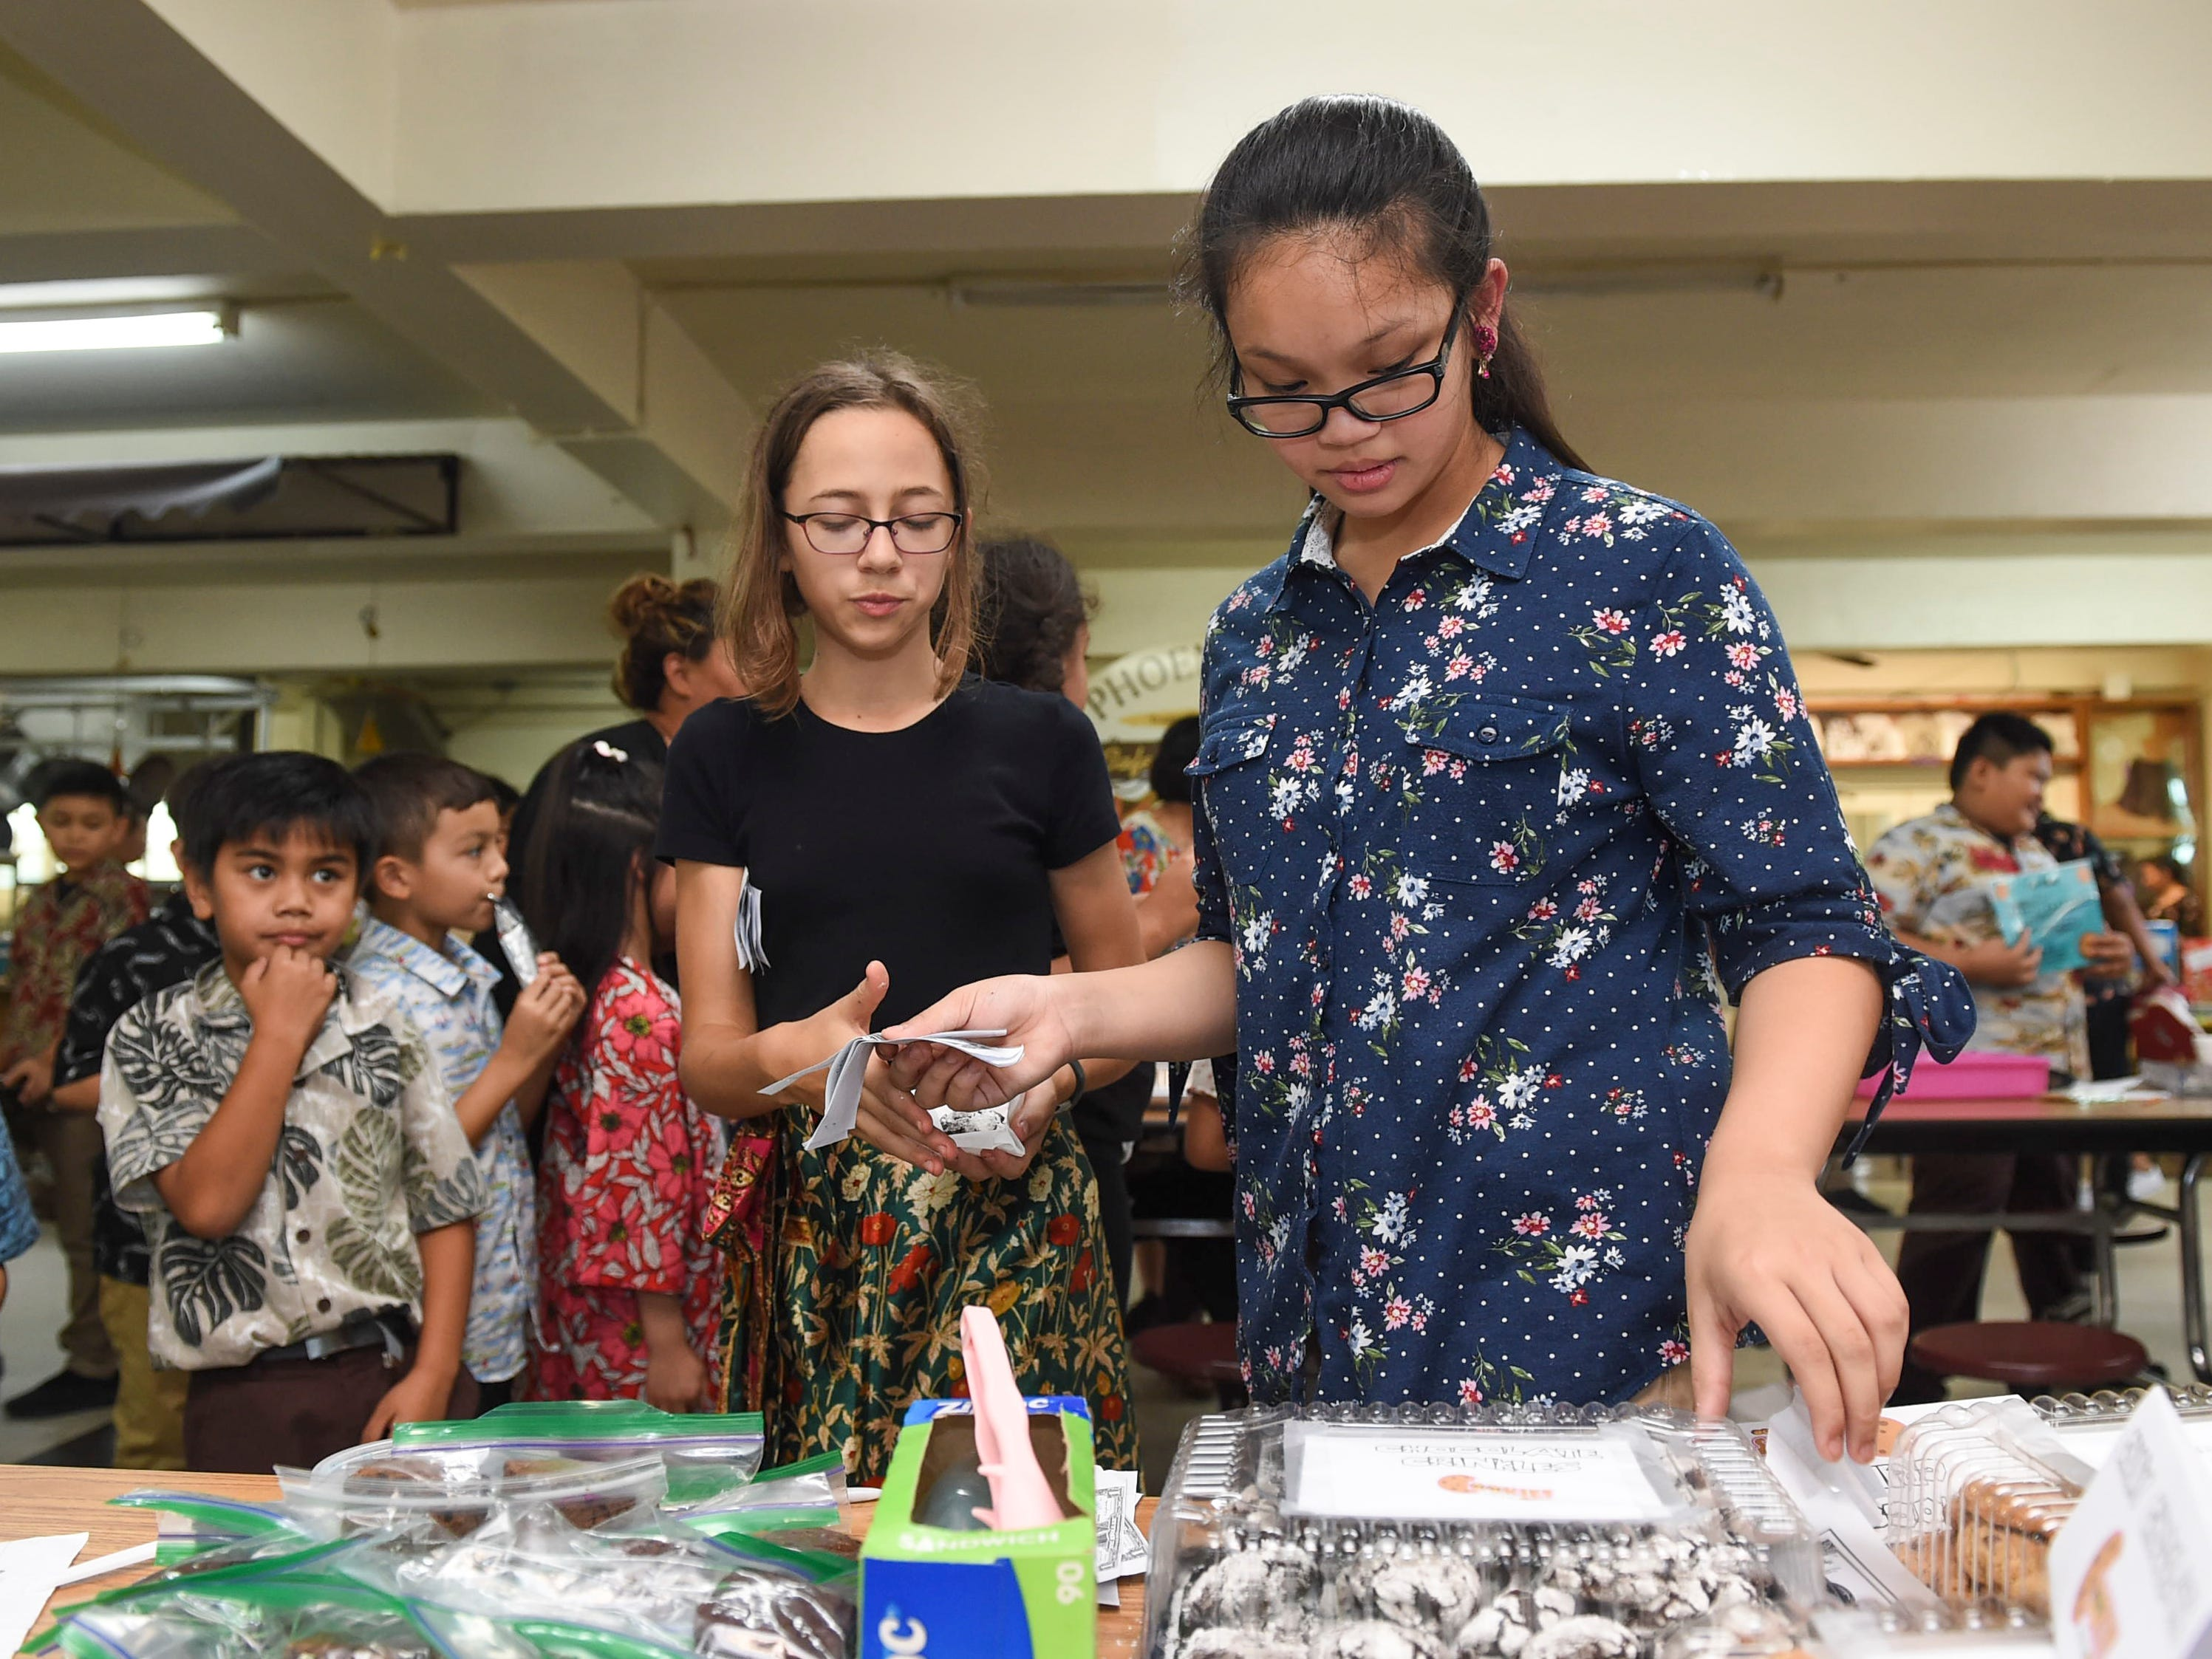 Chloe Vidallon, 11, right, makes a chocolate crinkle cookie sale to Zoe Ozerek, 12, during the 5th Annual Ysrael School of Business Retail Bazaar and Entrepreneur Fair at Our Lady of Mount Carmel Catholic School in Agat, Jan. 18, 2019.